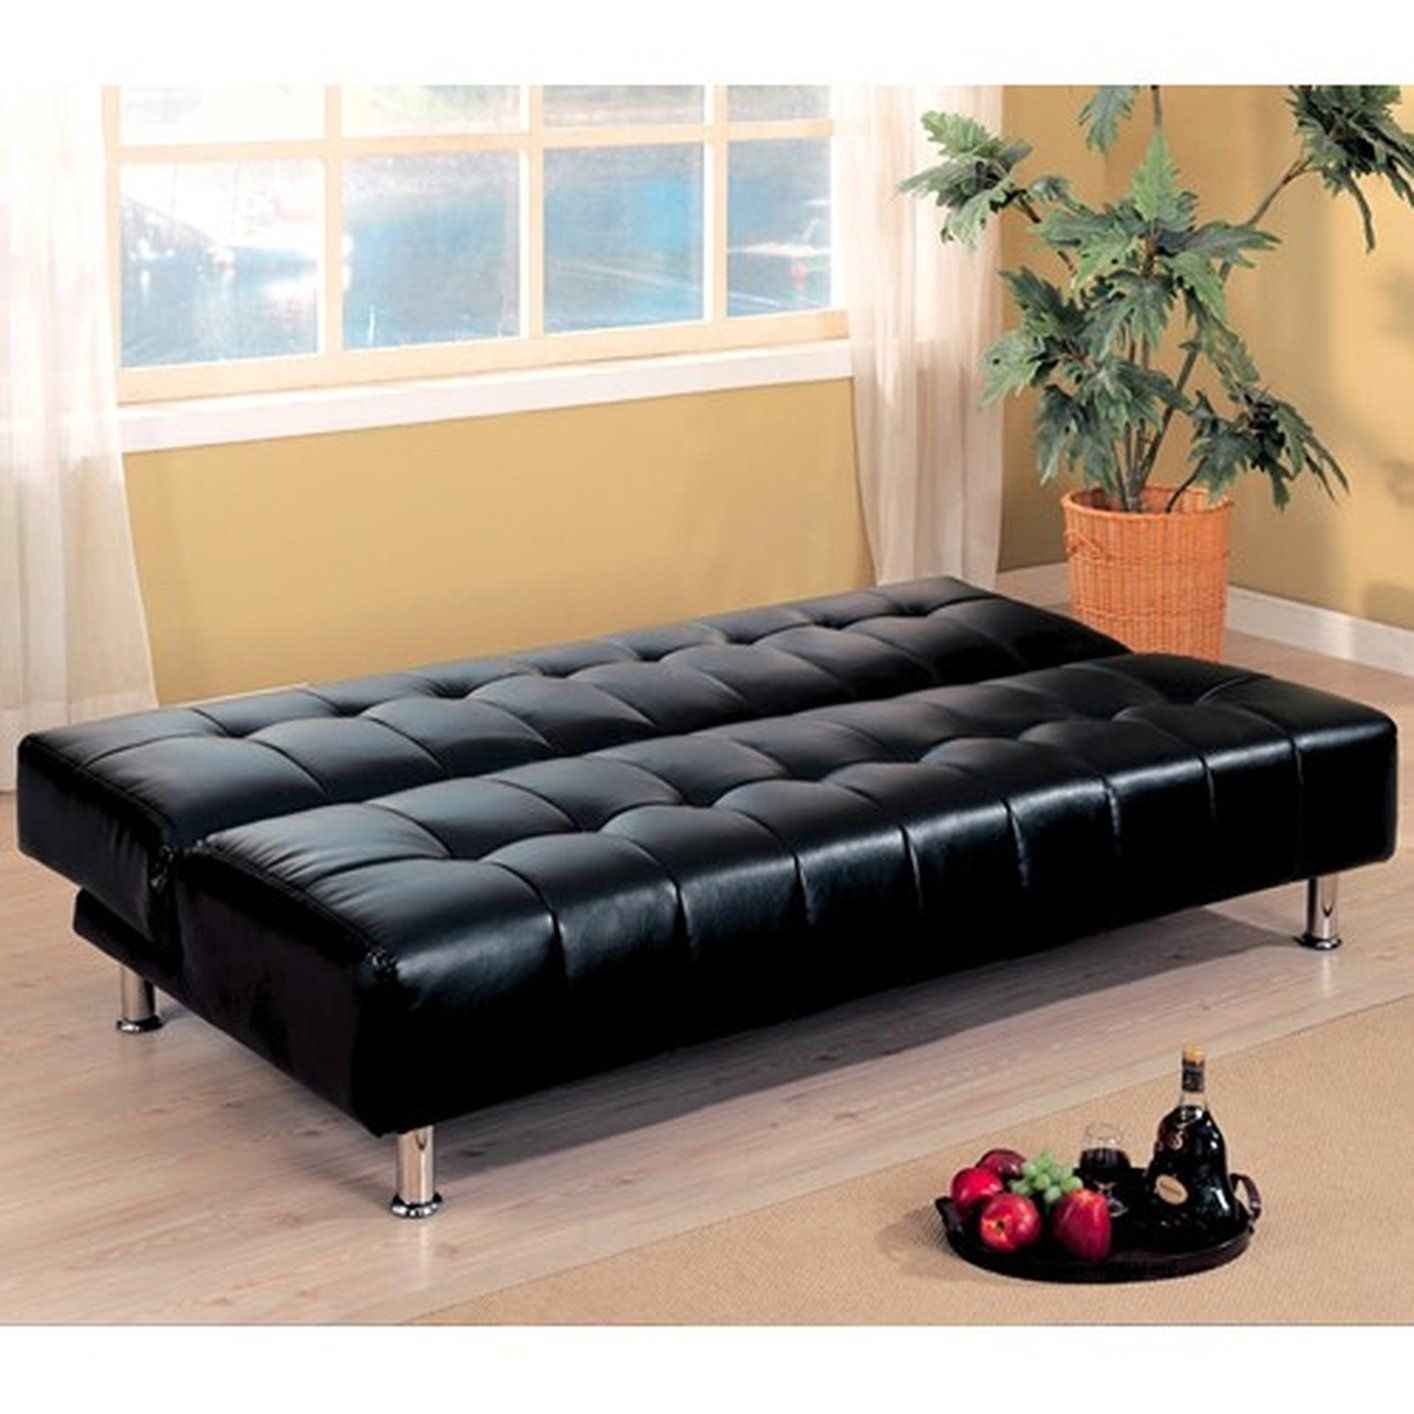 best  black leather sofa bed ideas on pinterest  black leather  - best  black leather sofa bed ideas on pinterest  black leather sofaset black leather couches and black couch decor